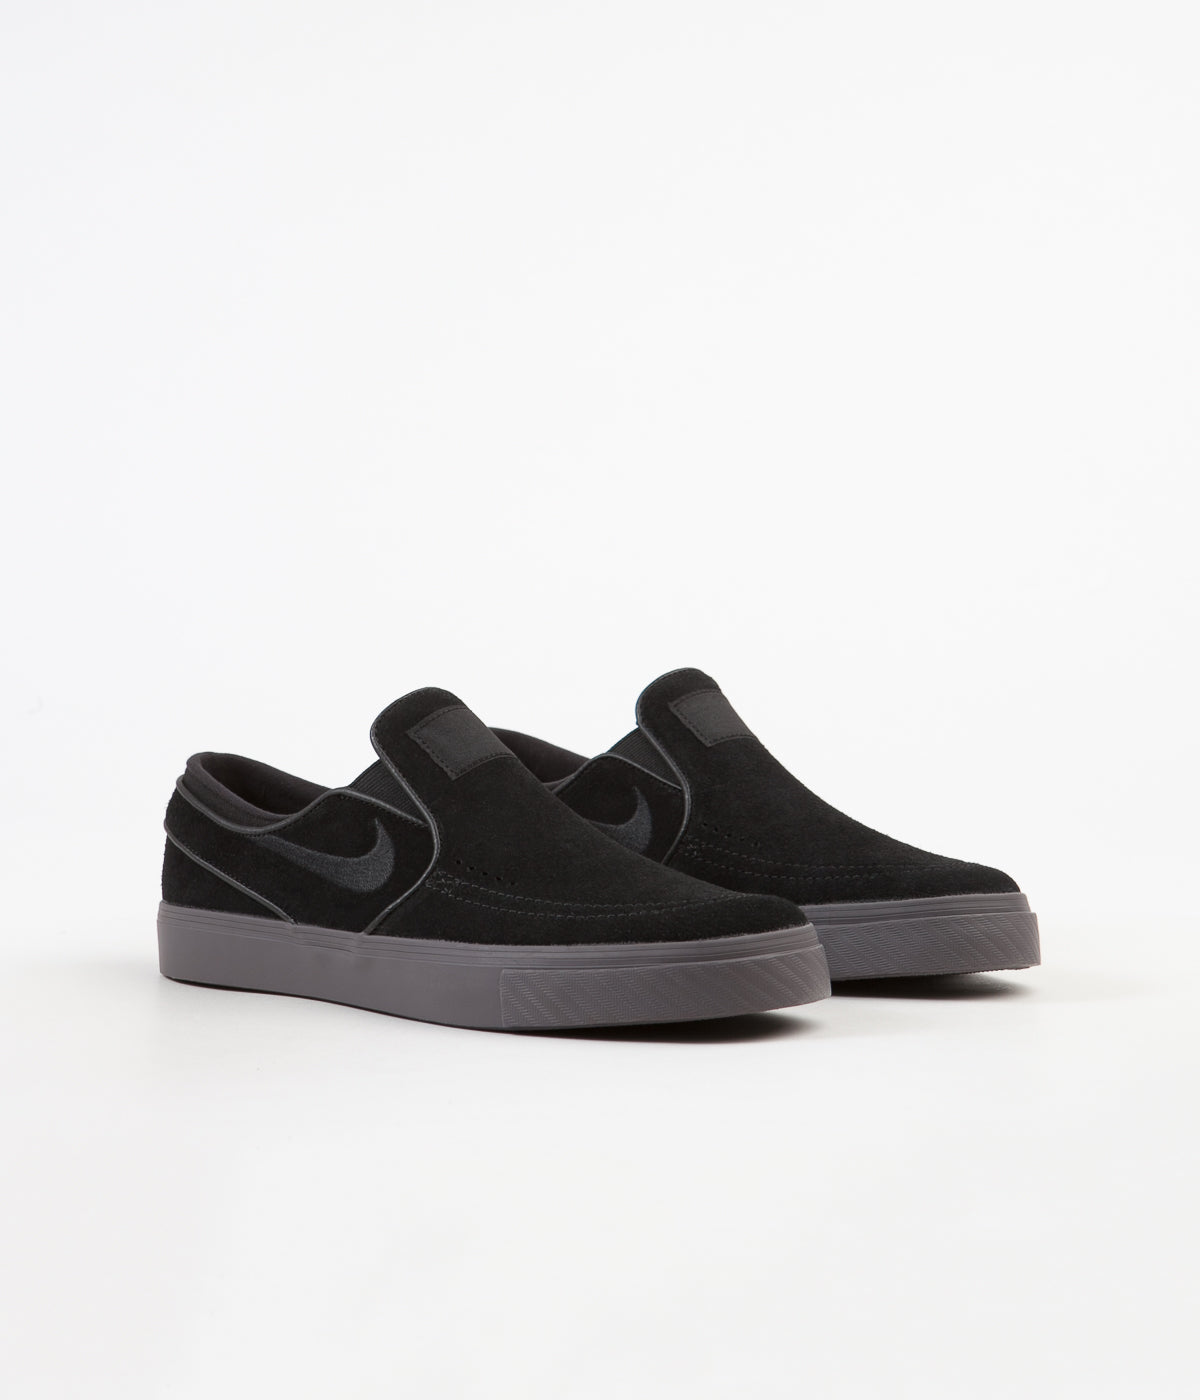 Nike SB Stefan Janoski Slip On Shoes - Black / Black - Thunder Grey